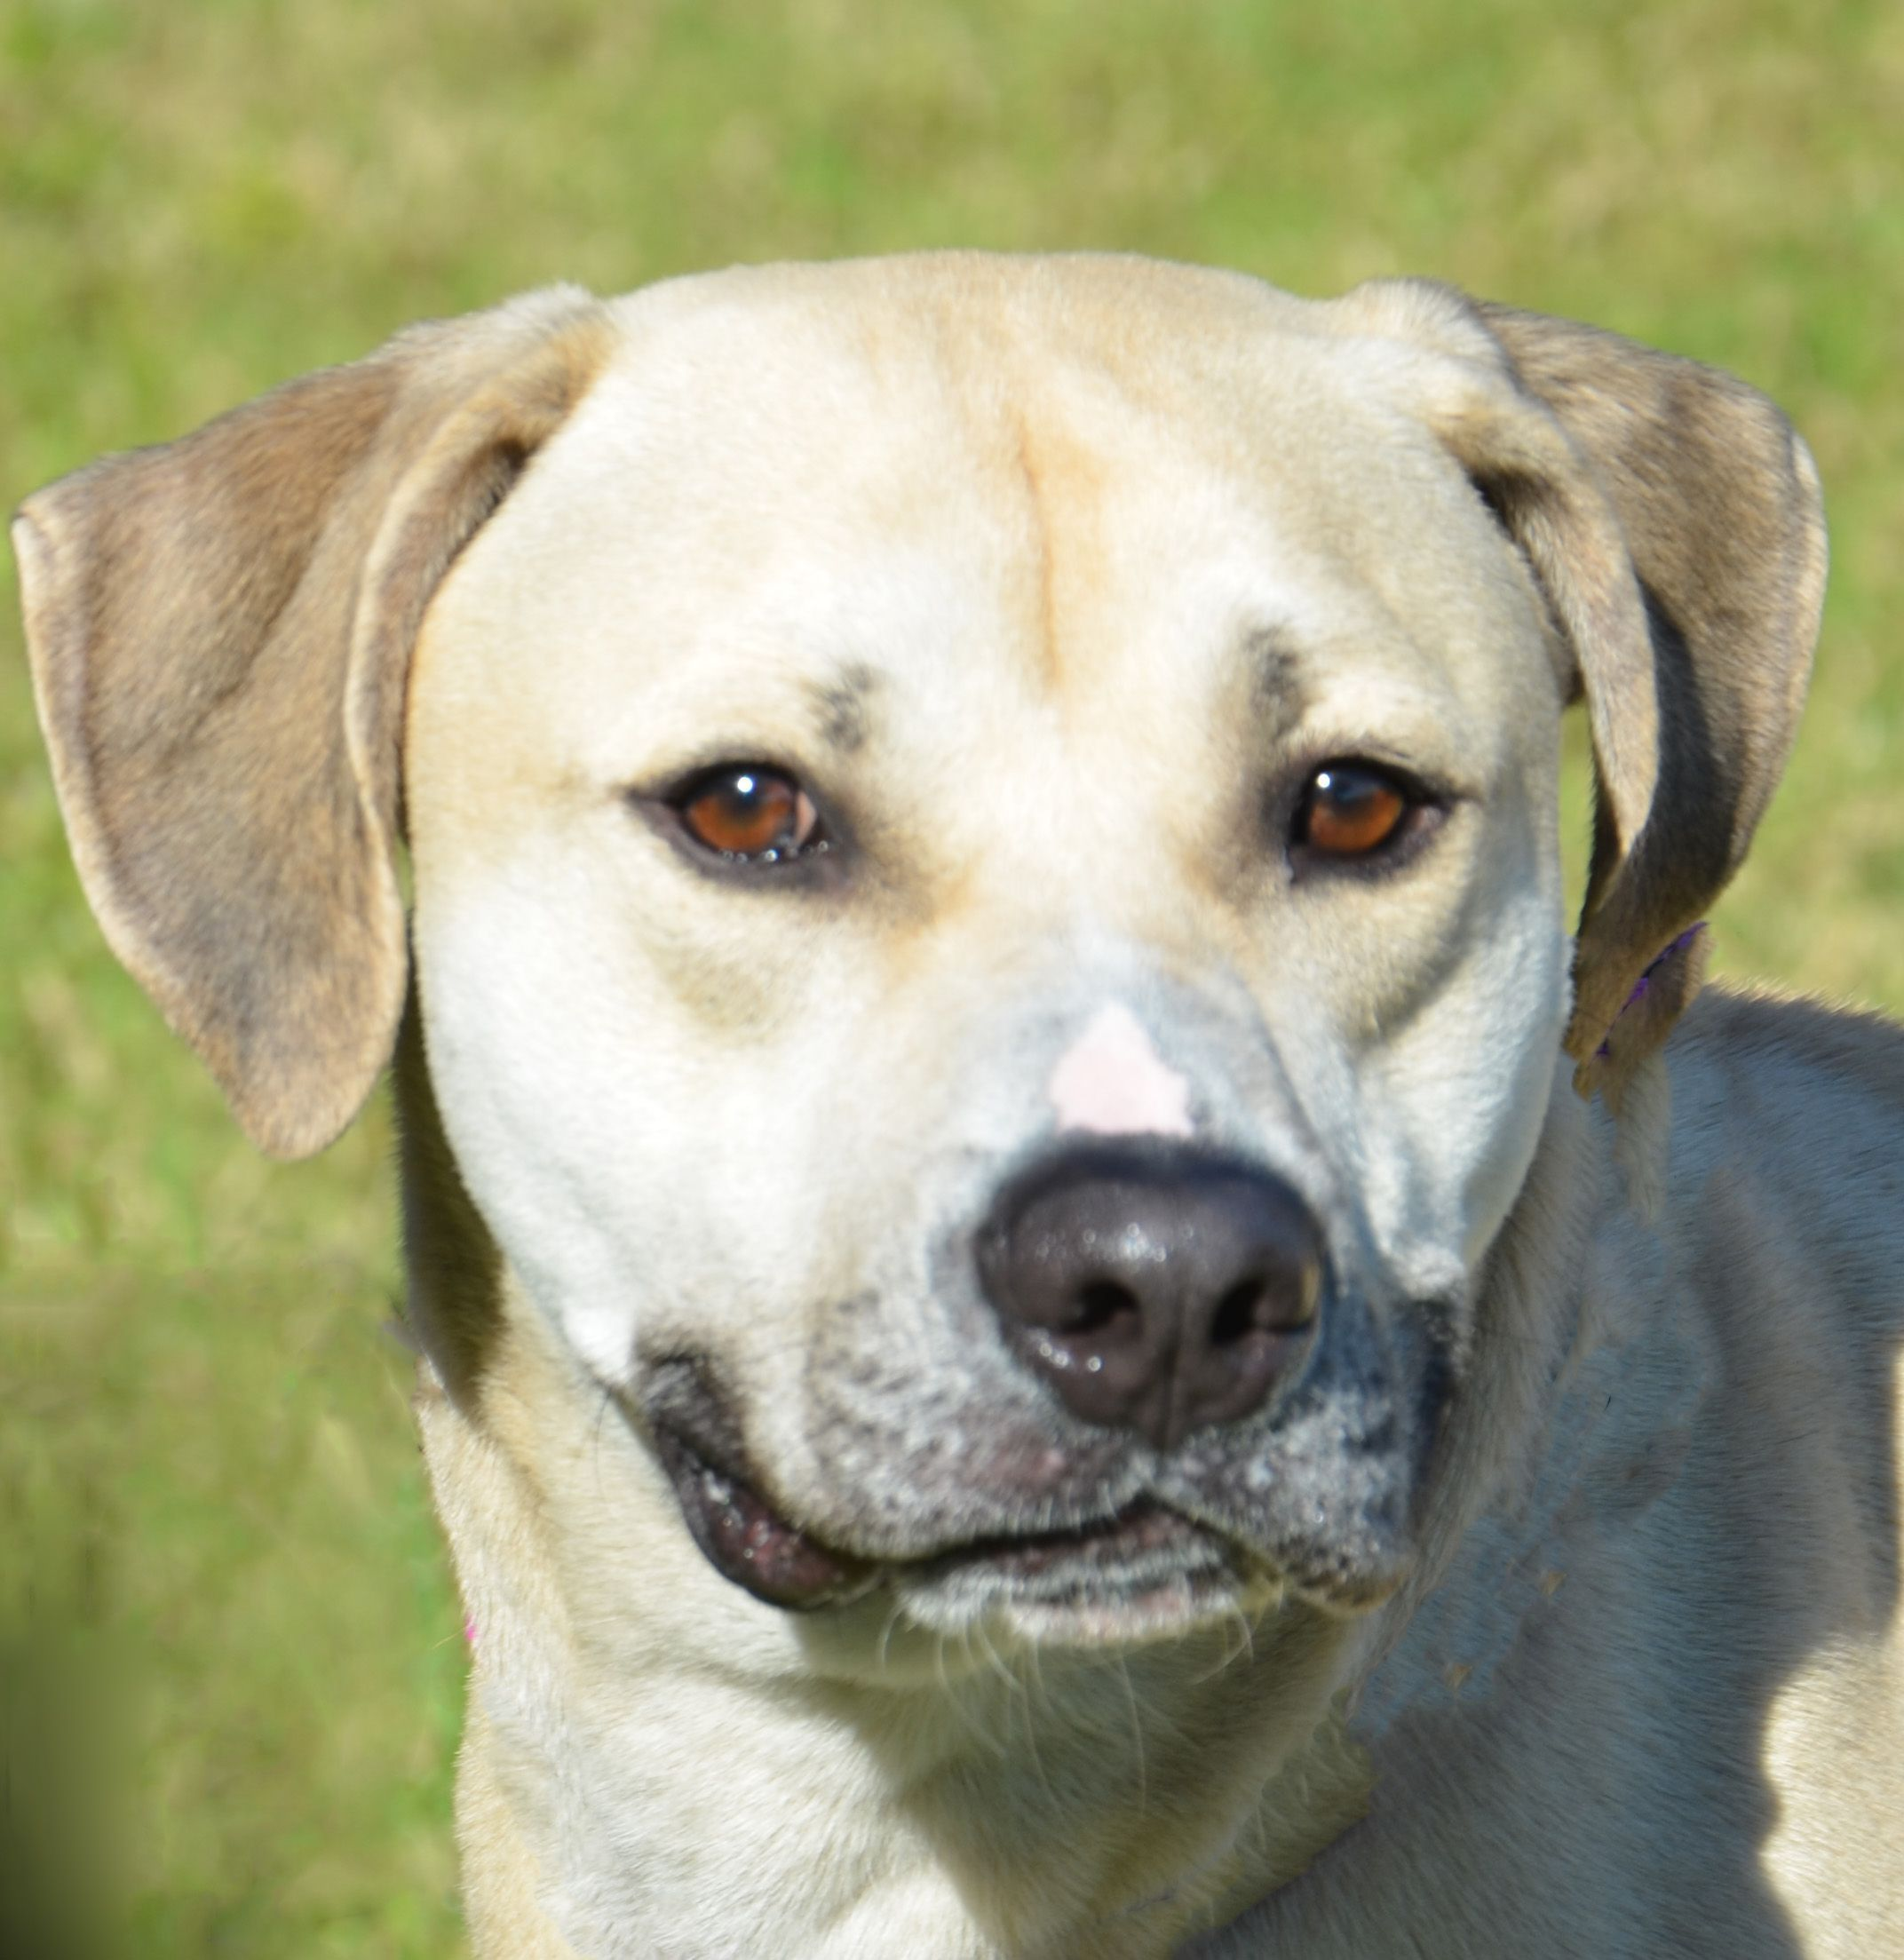 Black Mouth Cur dog for Adoption in Englewood, FL. ADN